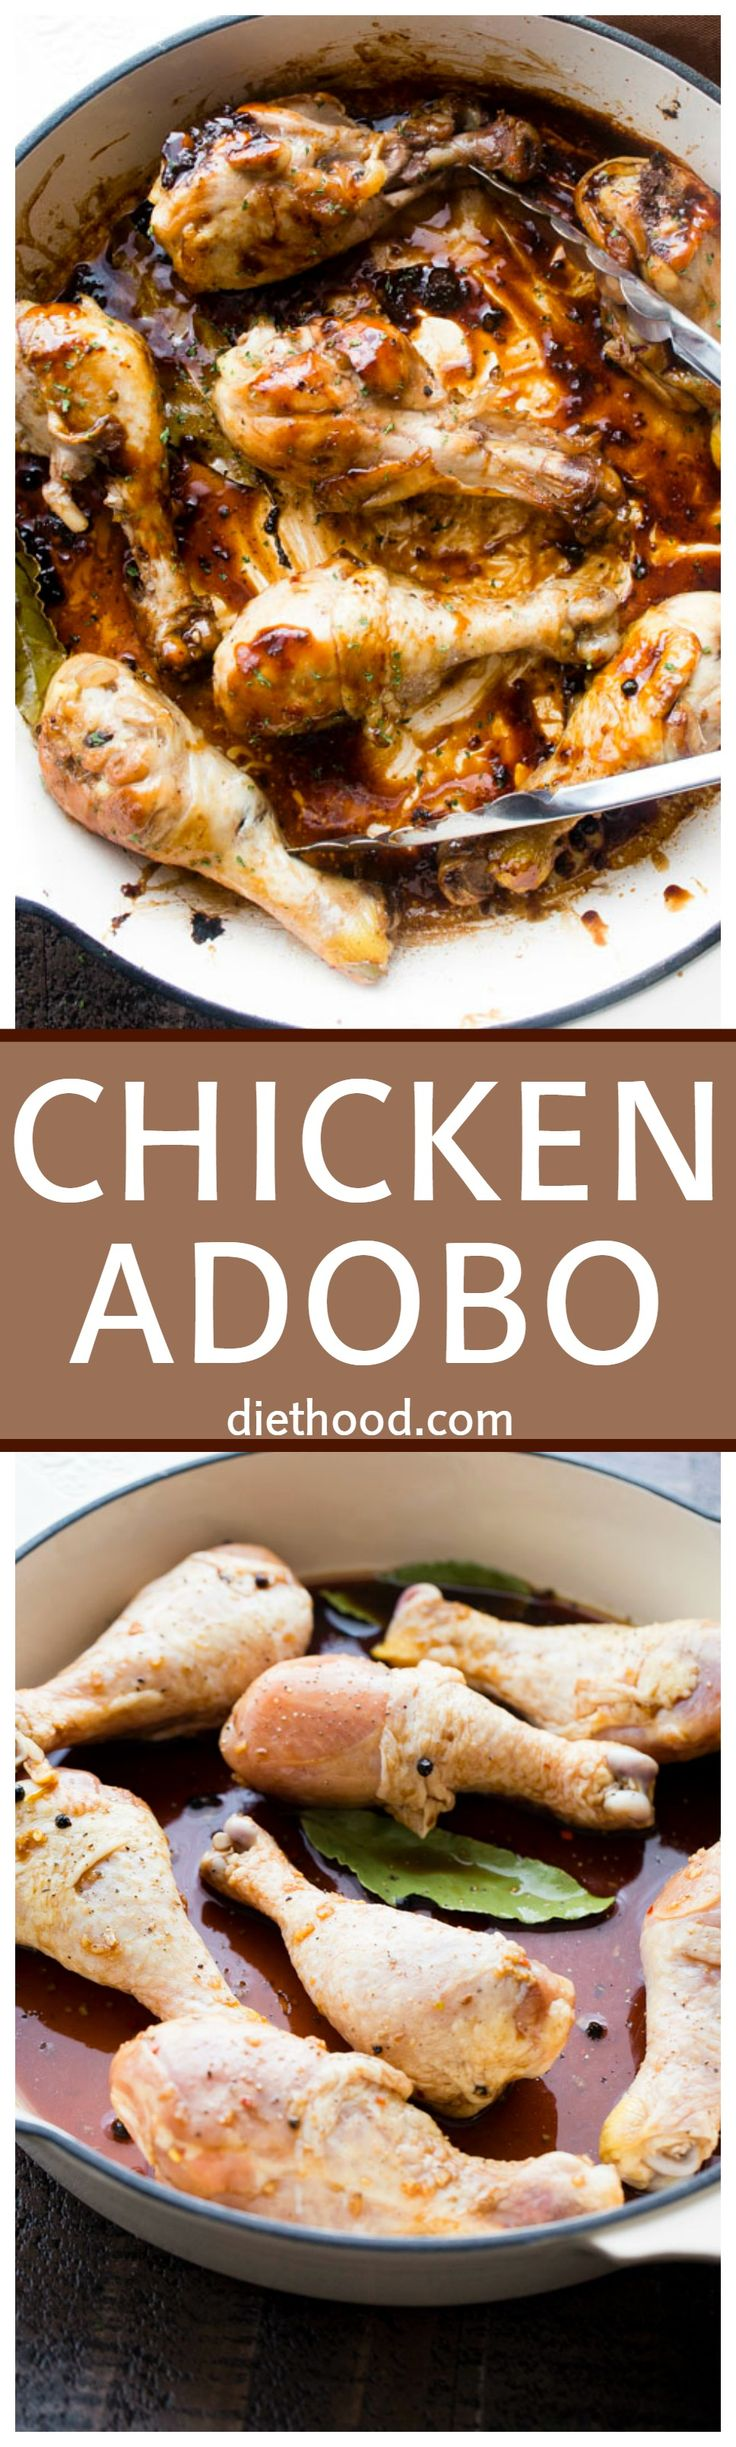 Easy Chicken Adobo Recipe - Inspired by the Phillipine's national dish, this garlicky, vinegary, sweet, and sour chicken adobo is so incredibly delicious and very easy to prepare!